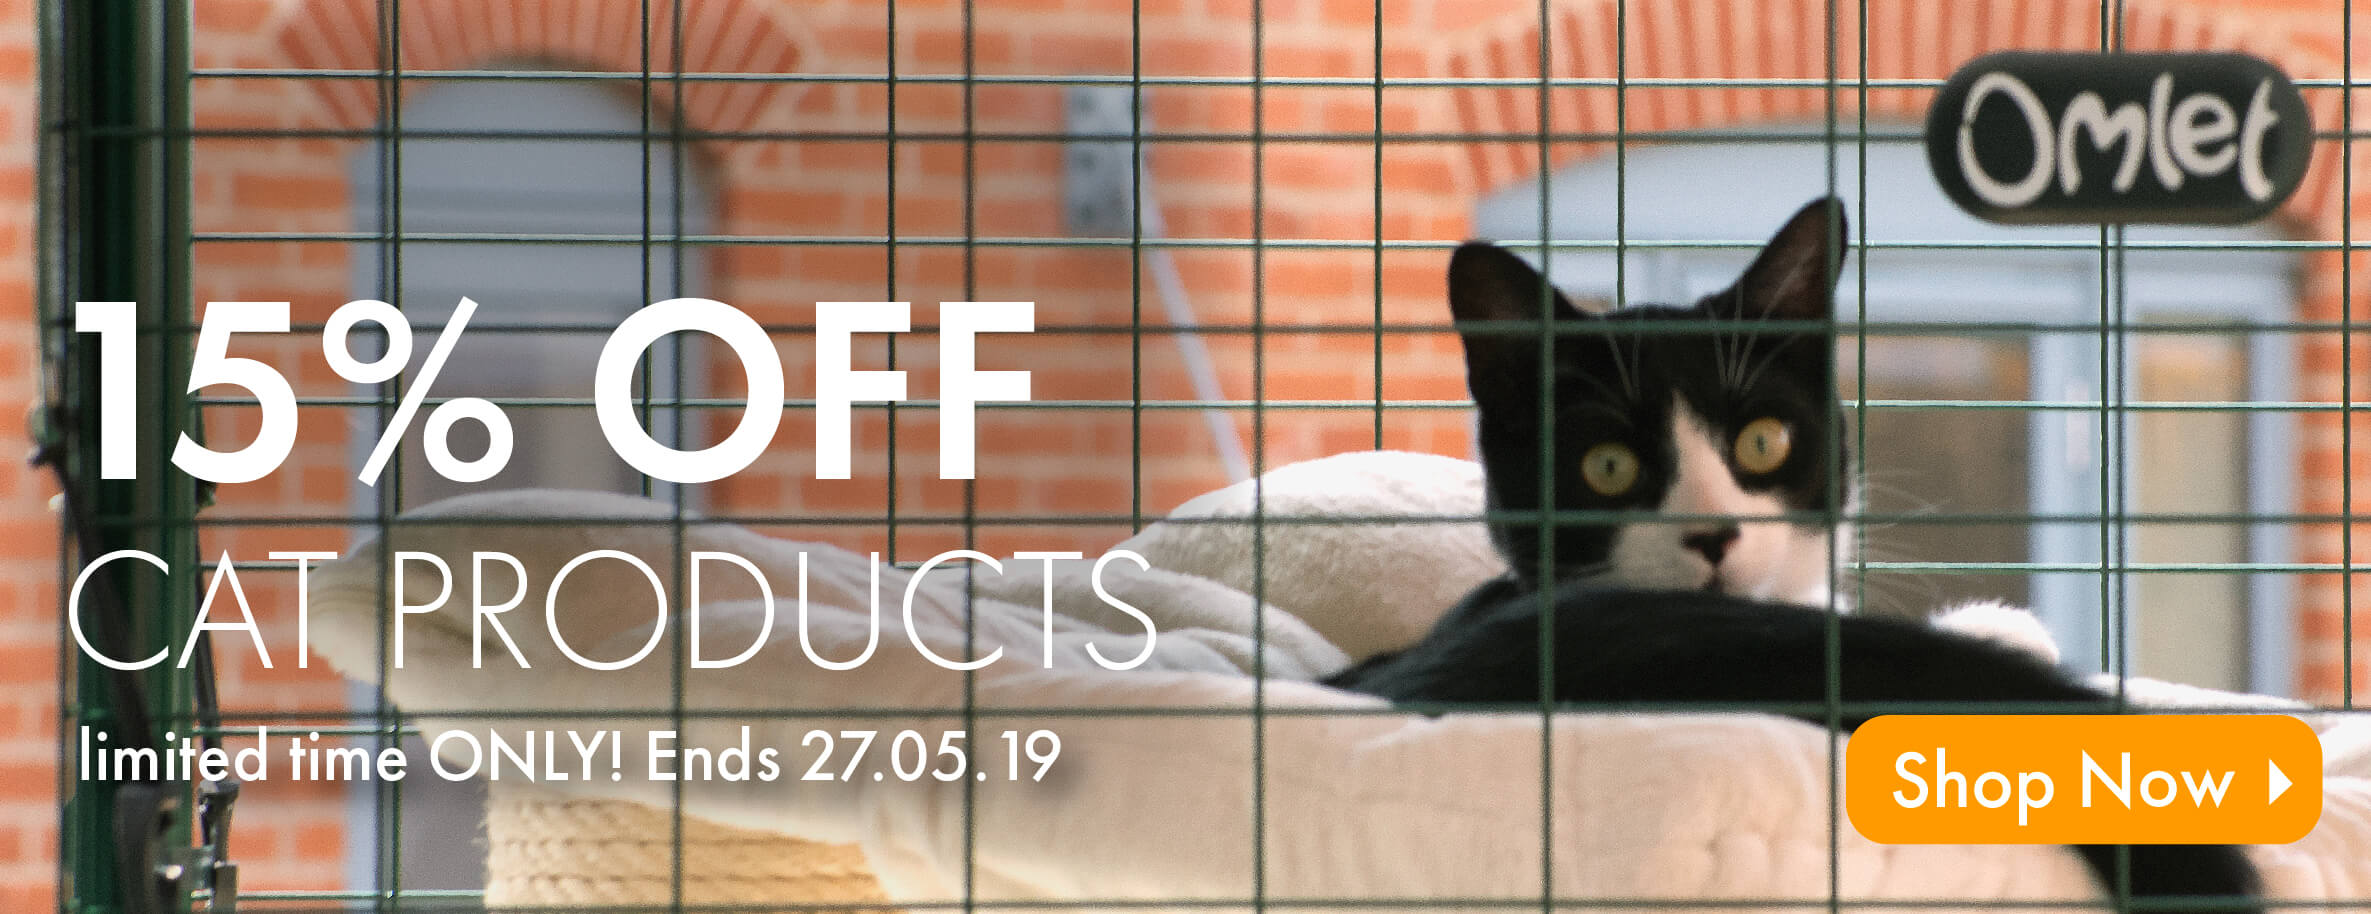 15% OFF Cat Products